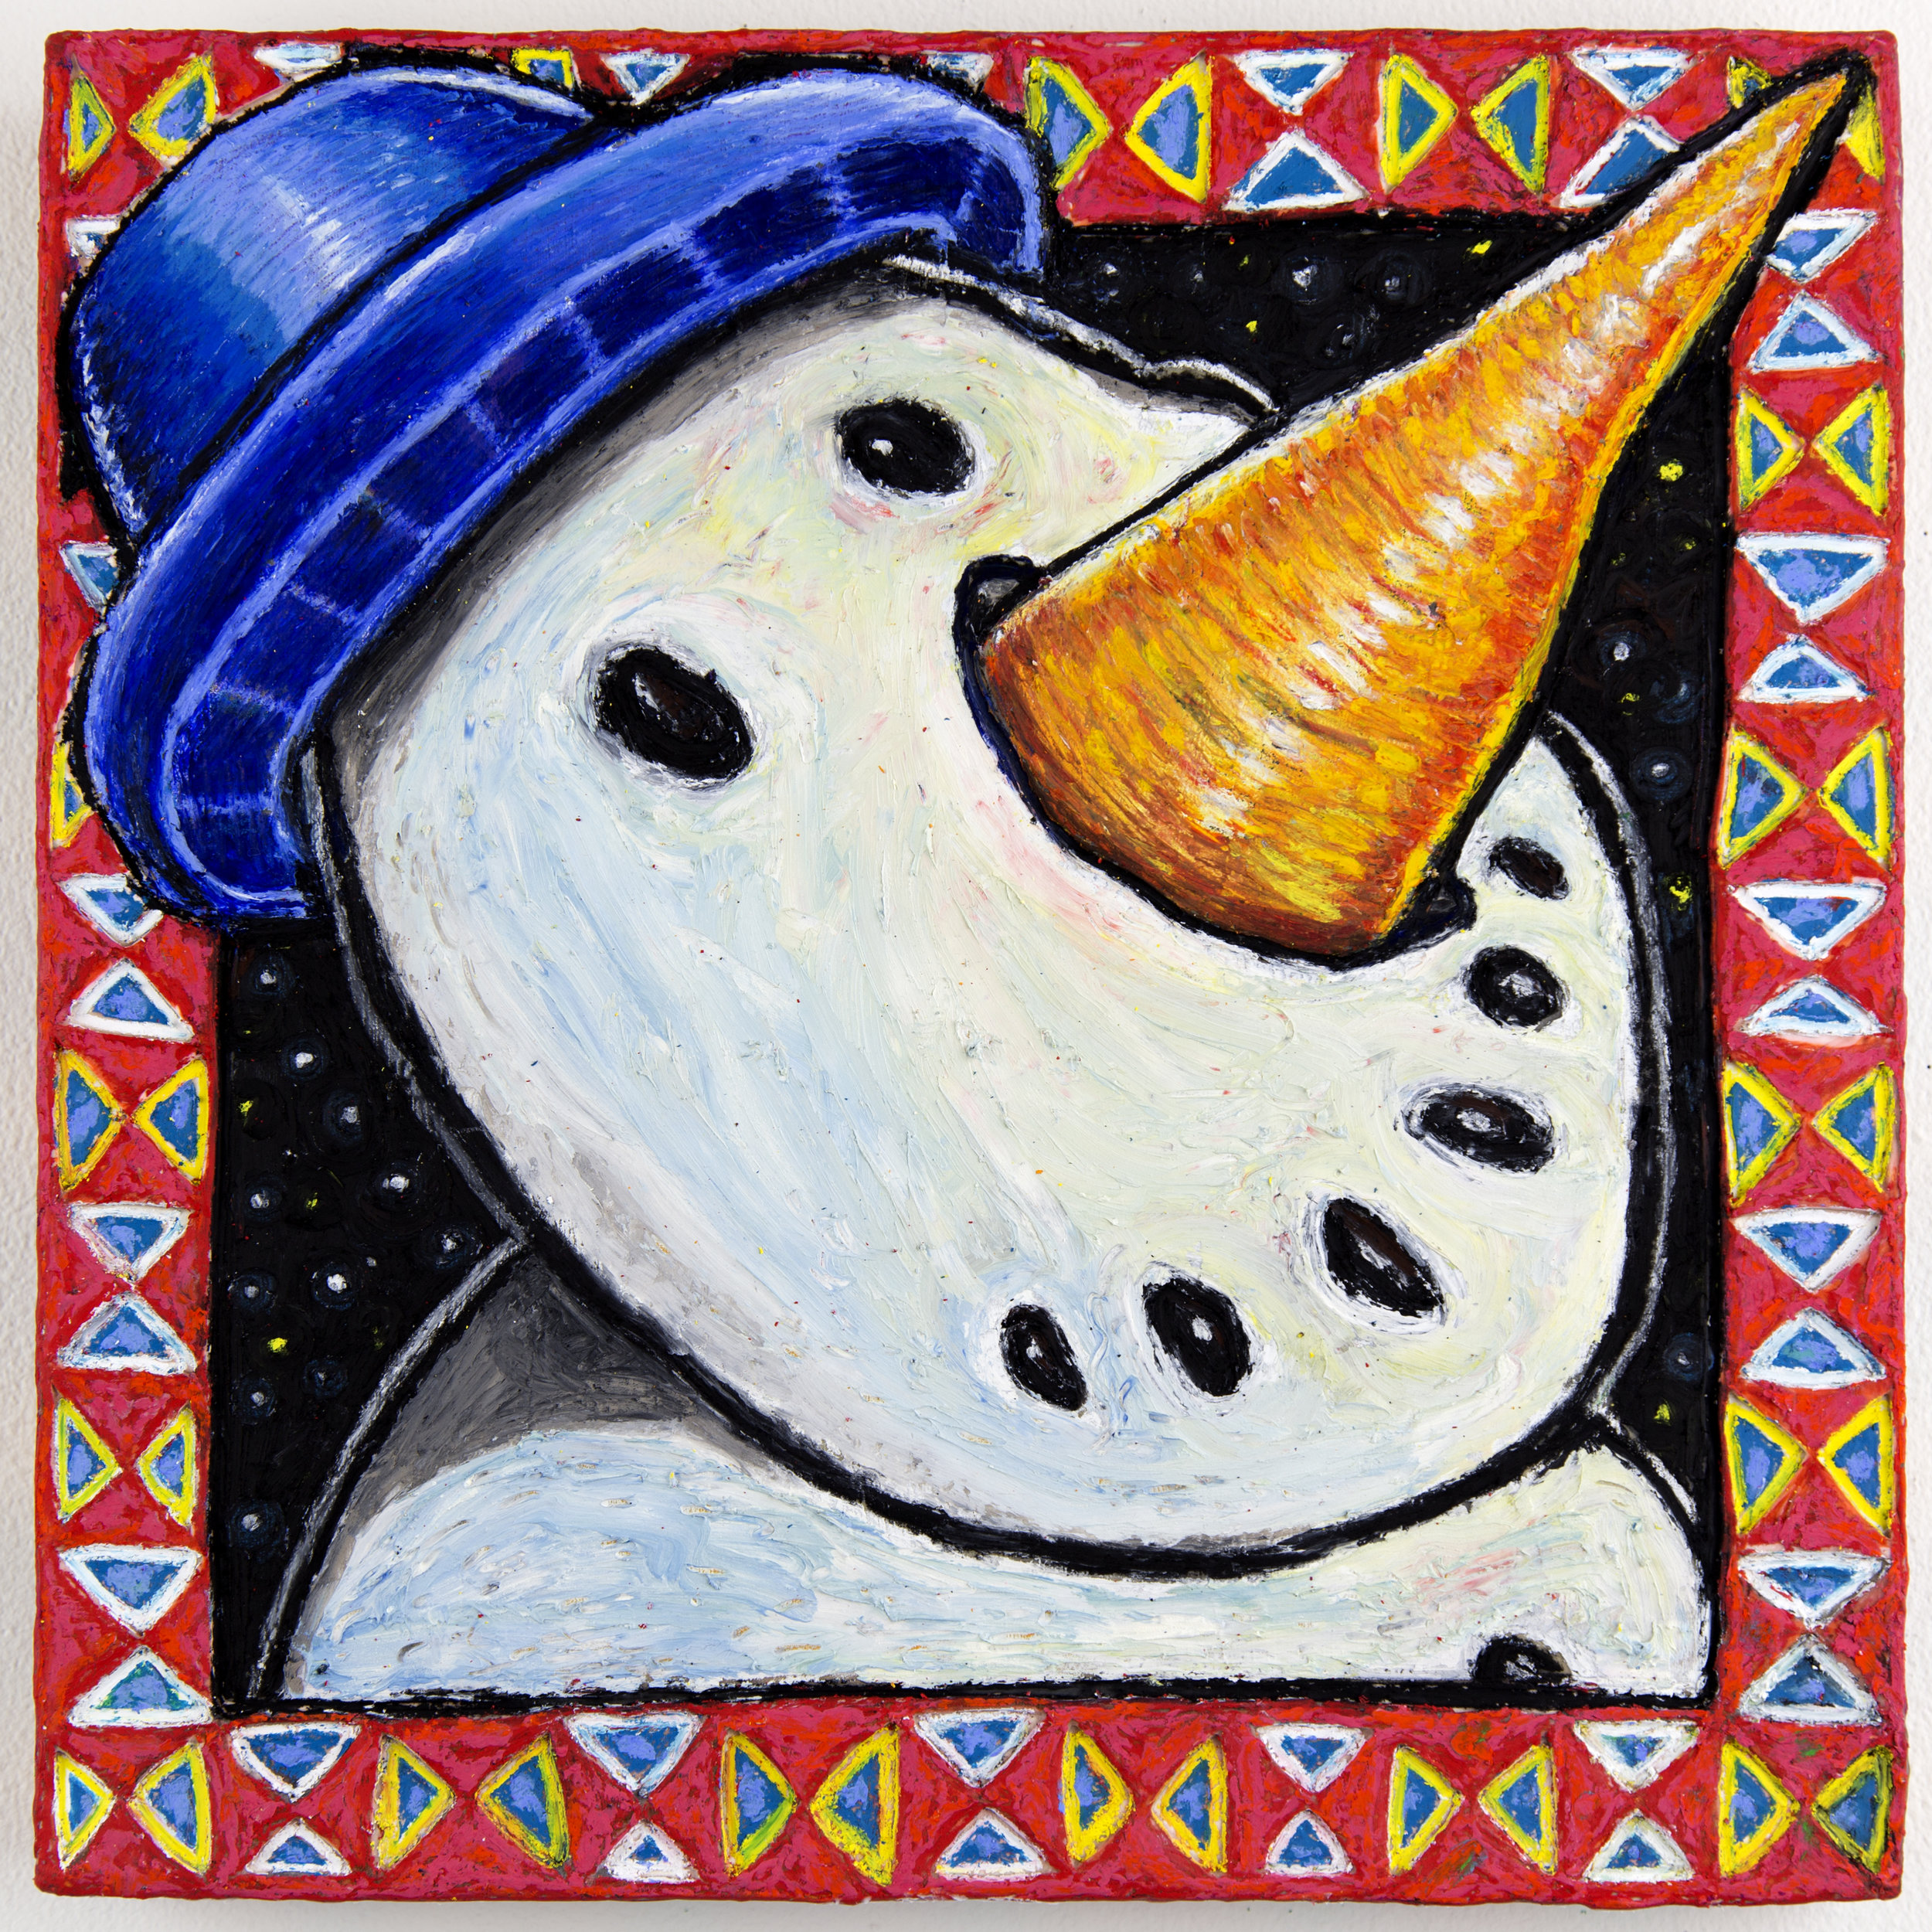 Frosty with Arabesque boarder